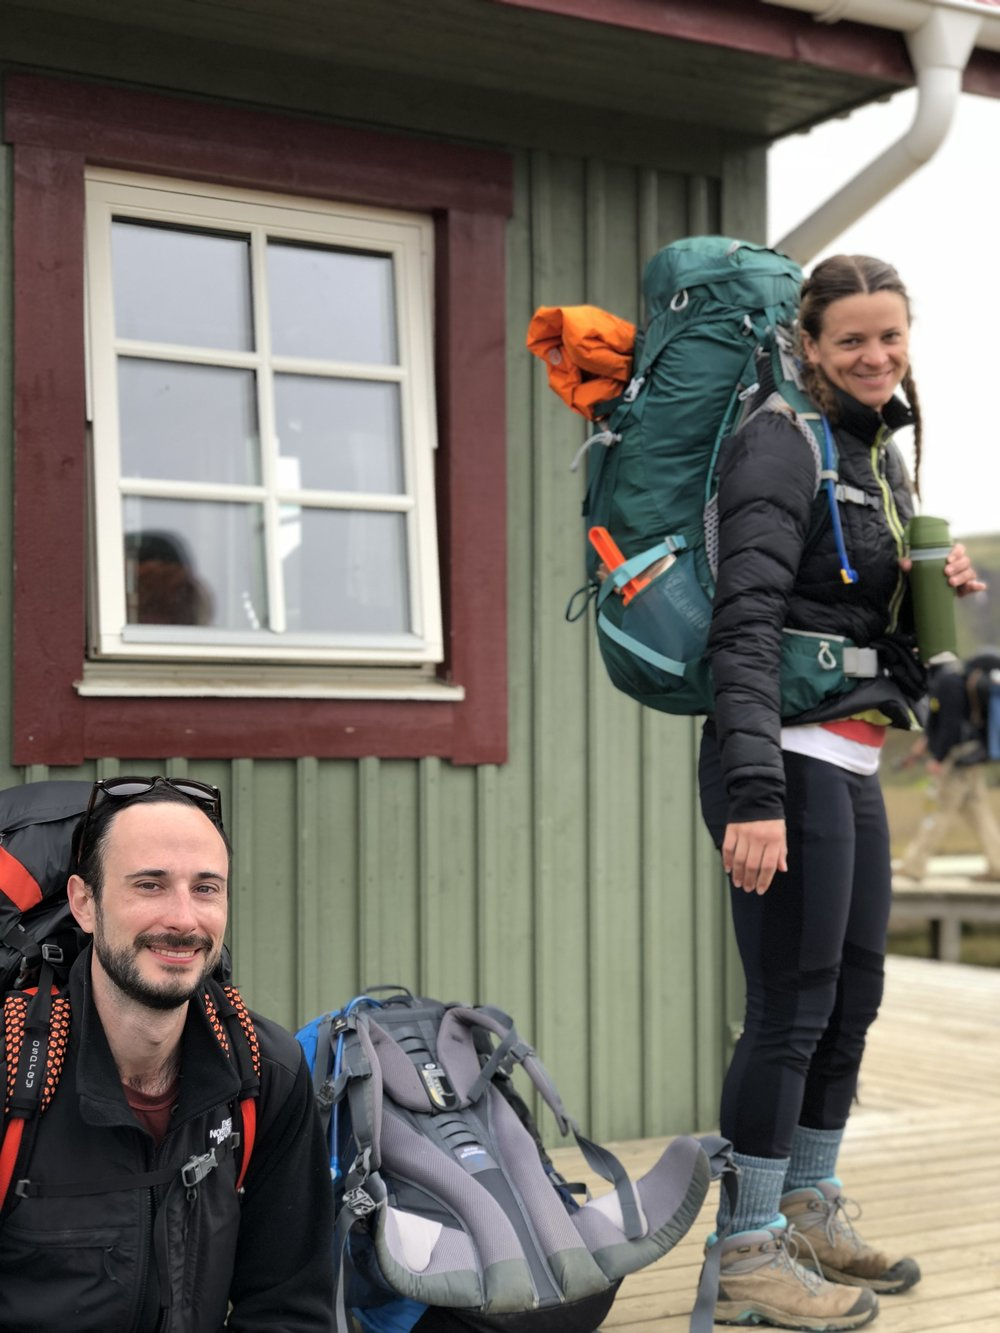 My fiancee (ee!) and my friend Alli, along with my awesome but inexpensive pack on our backpacking trip in Iceland!